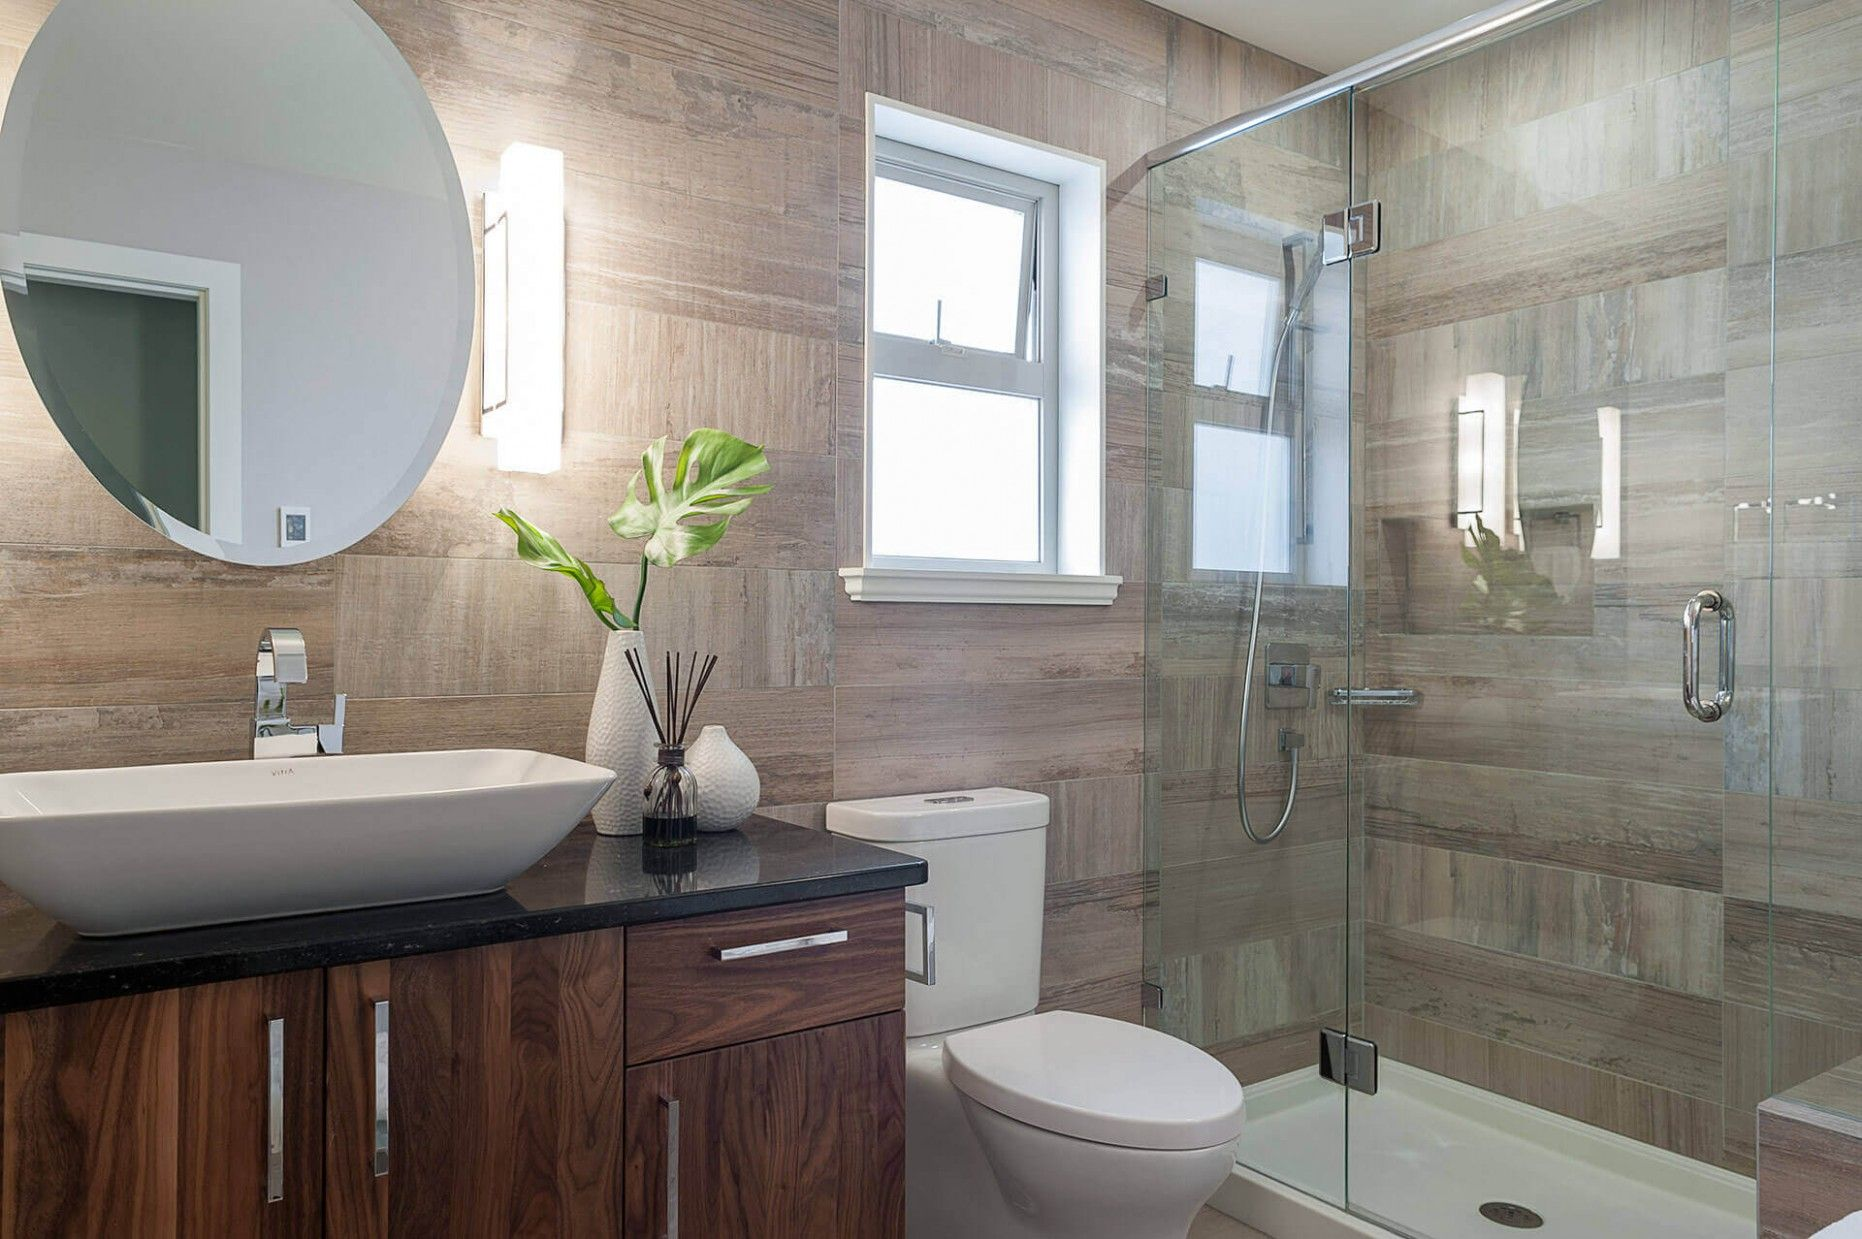 Small Bathroom Remodel Estimate Di 2020